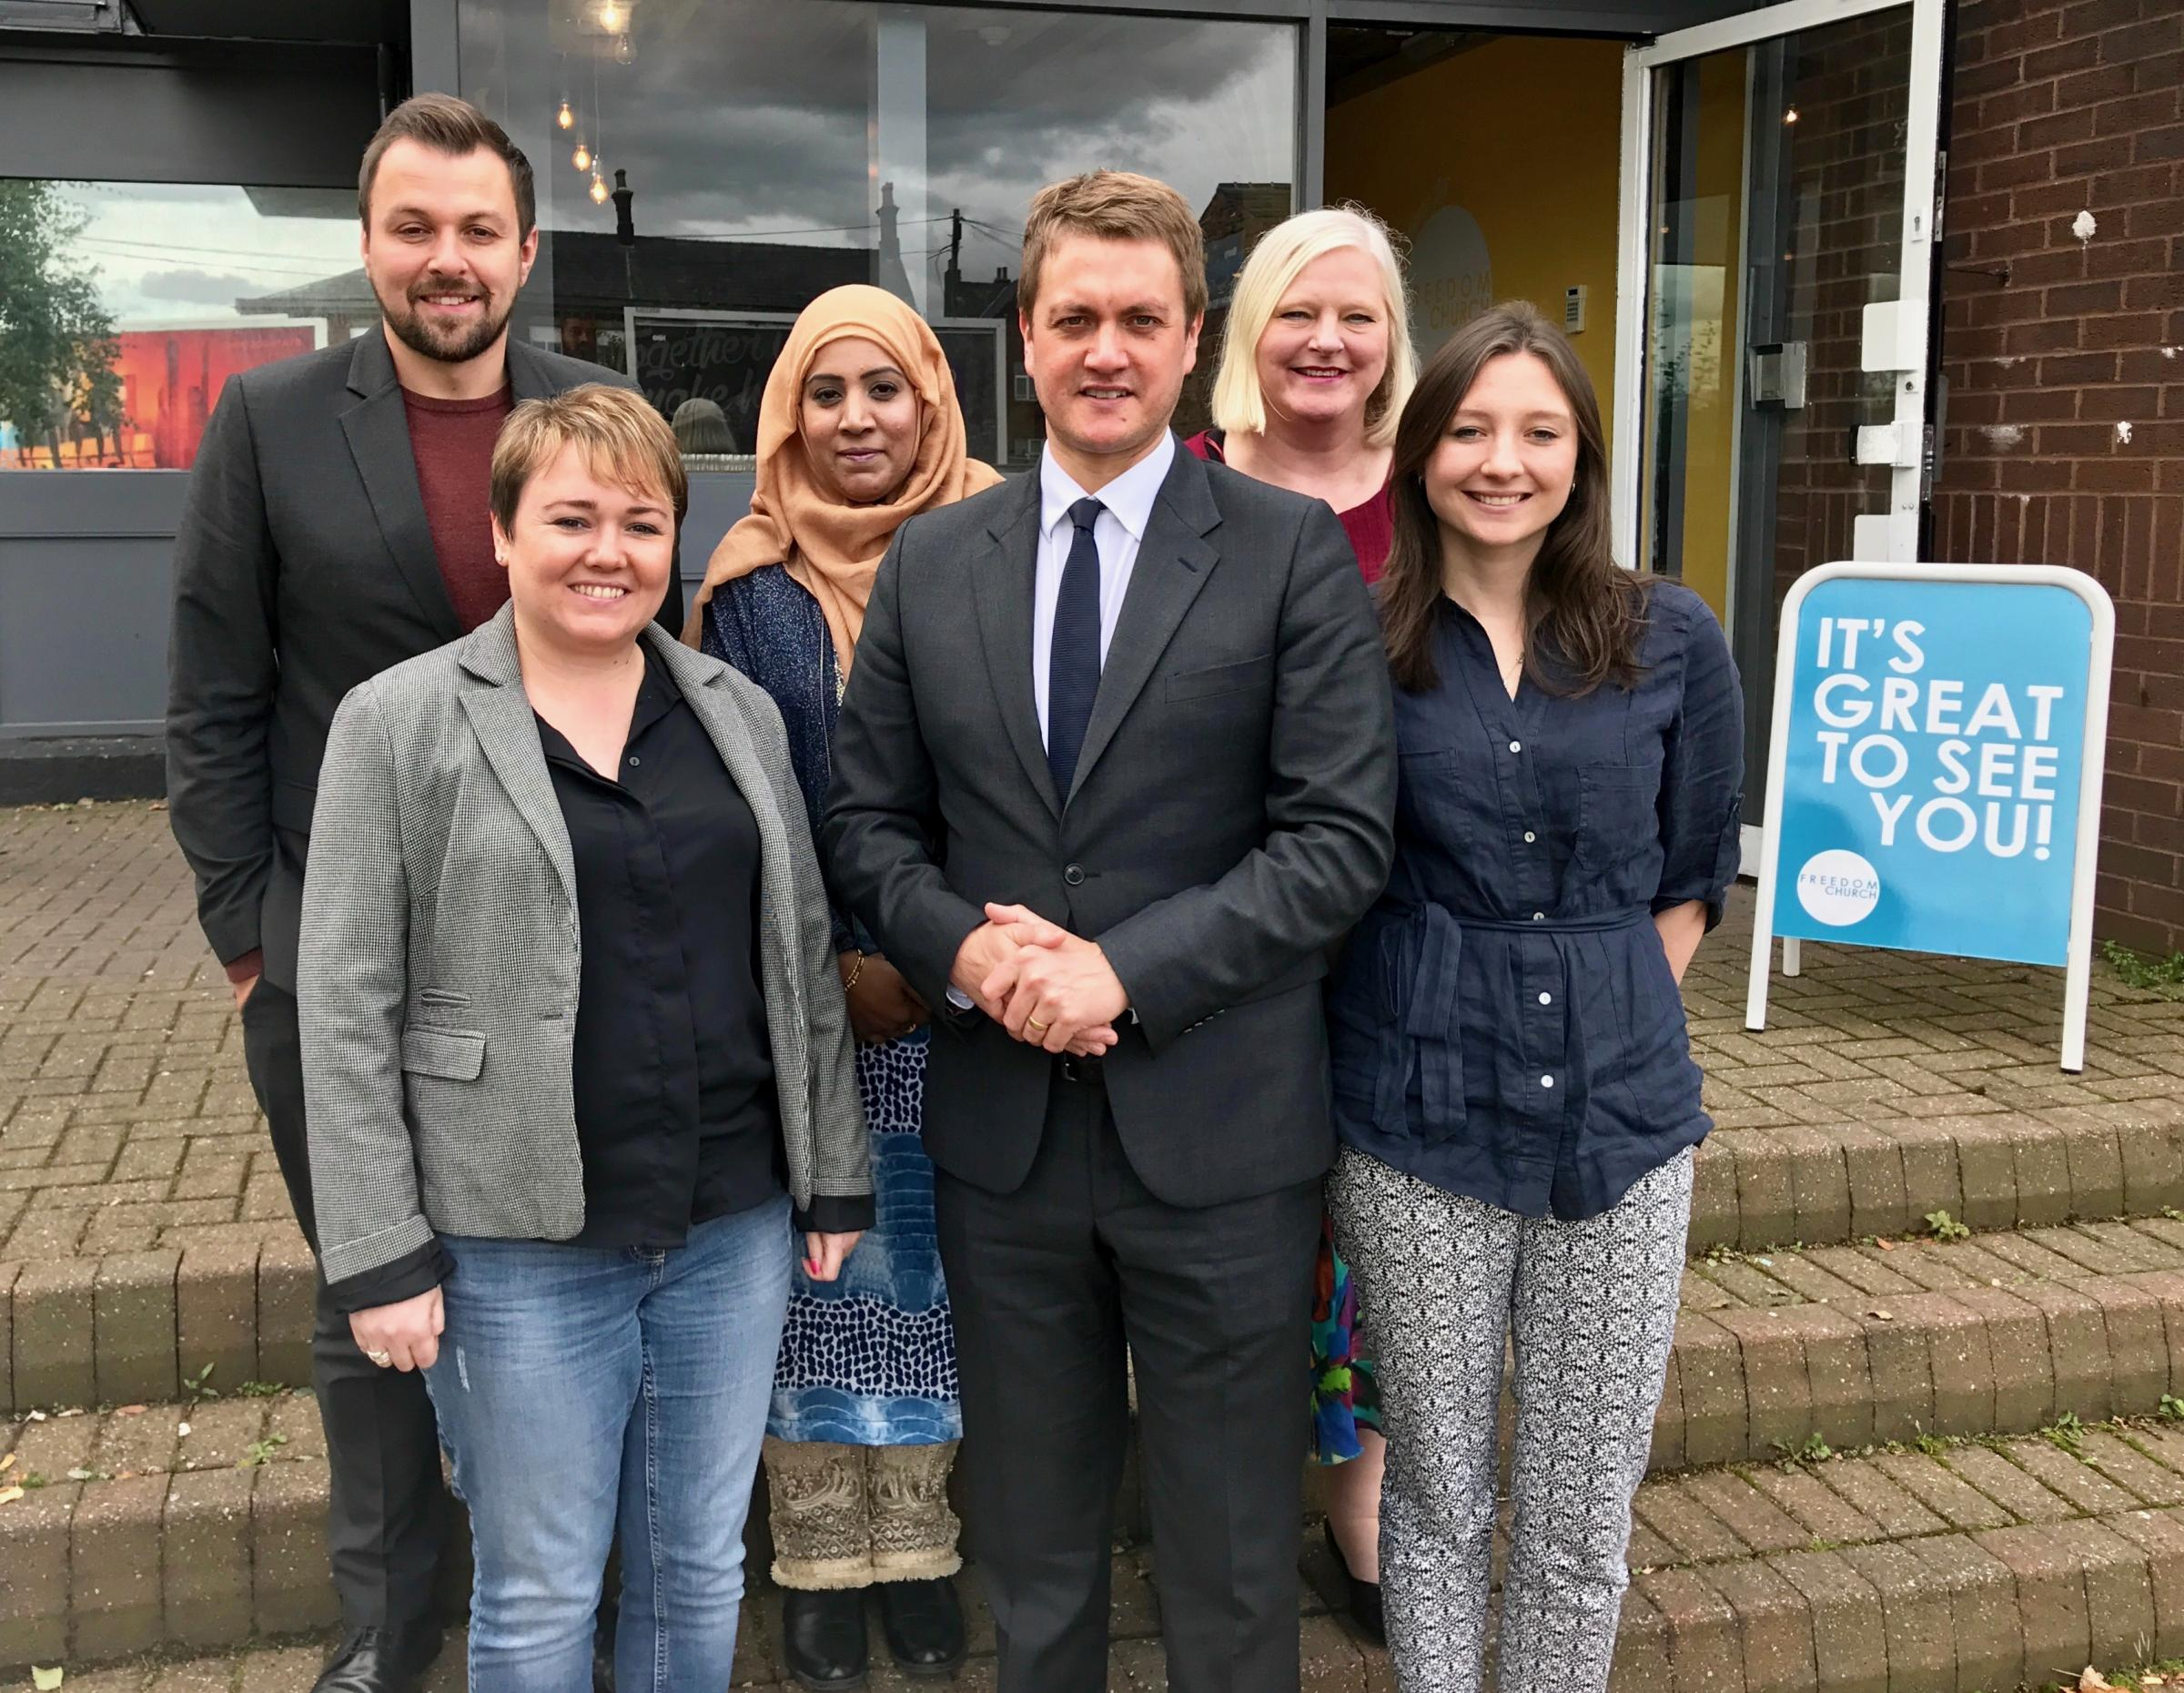 Pictured left to right: Kevin Peel, Sandra Walmsley, Ummrana Farooq, James Frith, Jeanette Ingham and Frances Cosby